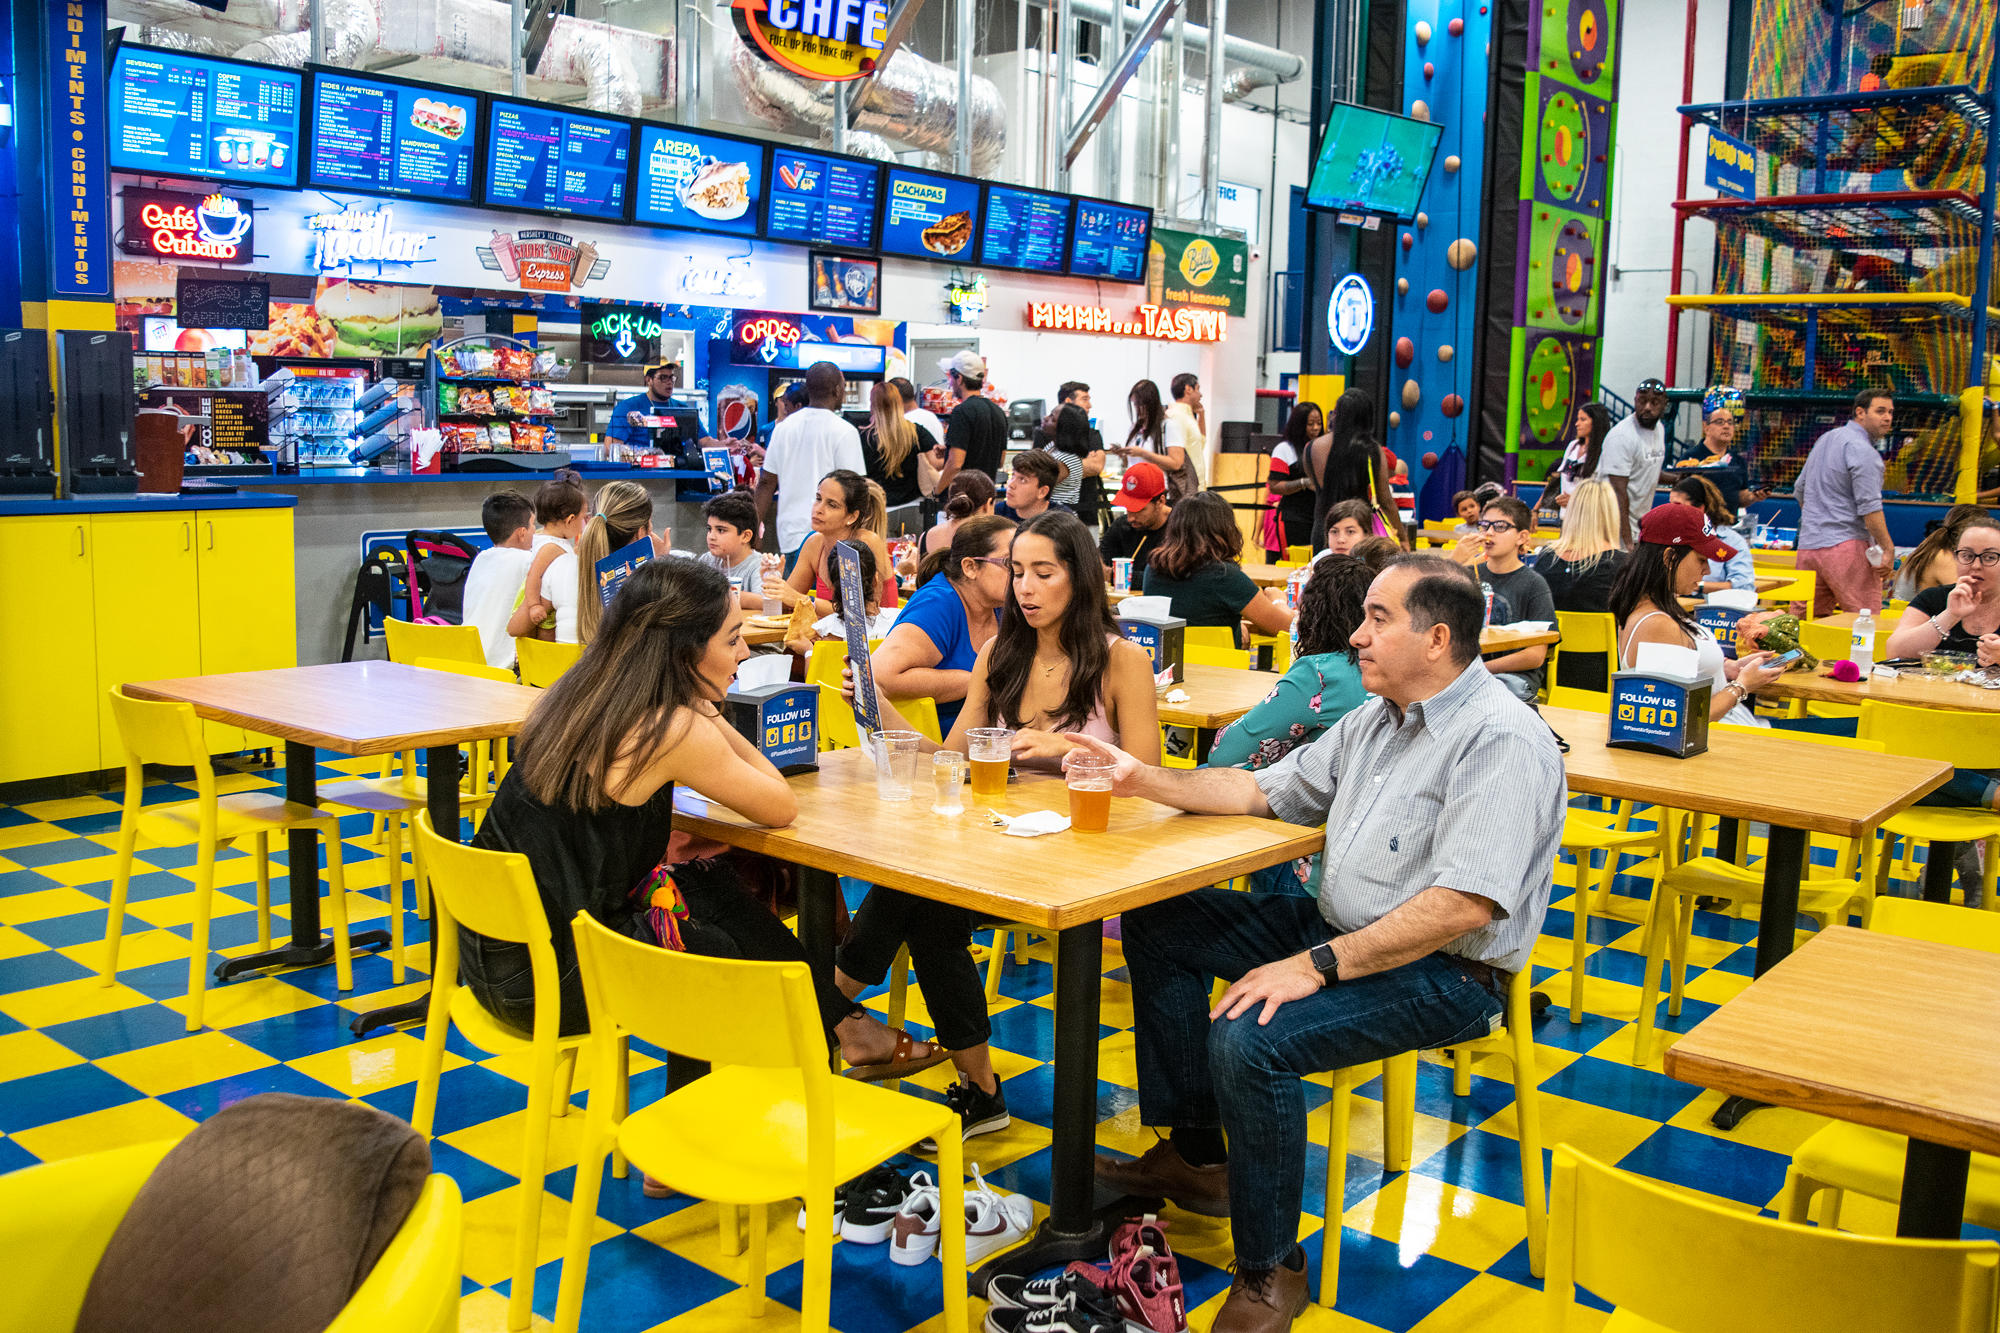 Motorcycle Stores Near Me >> Planet Air Sports Doral Coupons near me in Doral | 8coupons